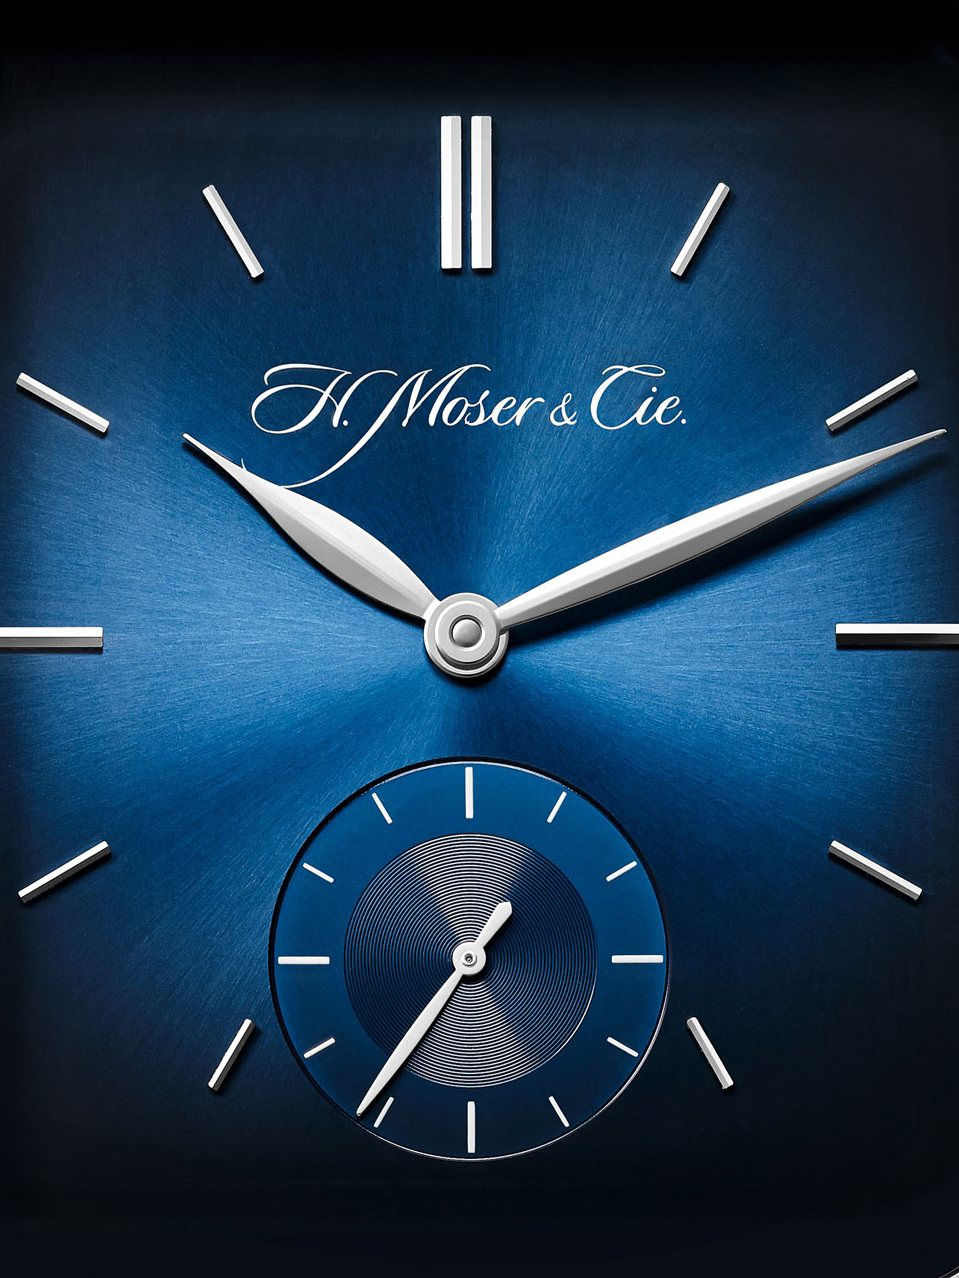 Swiss Alp Watch S,  H.Moser&Cie